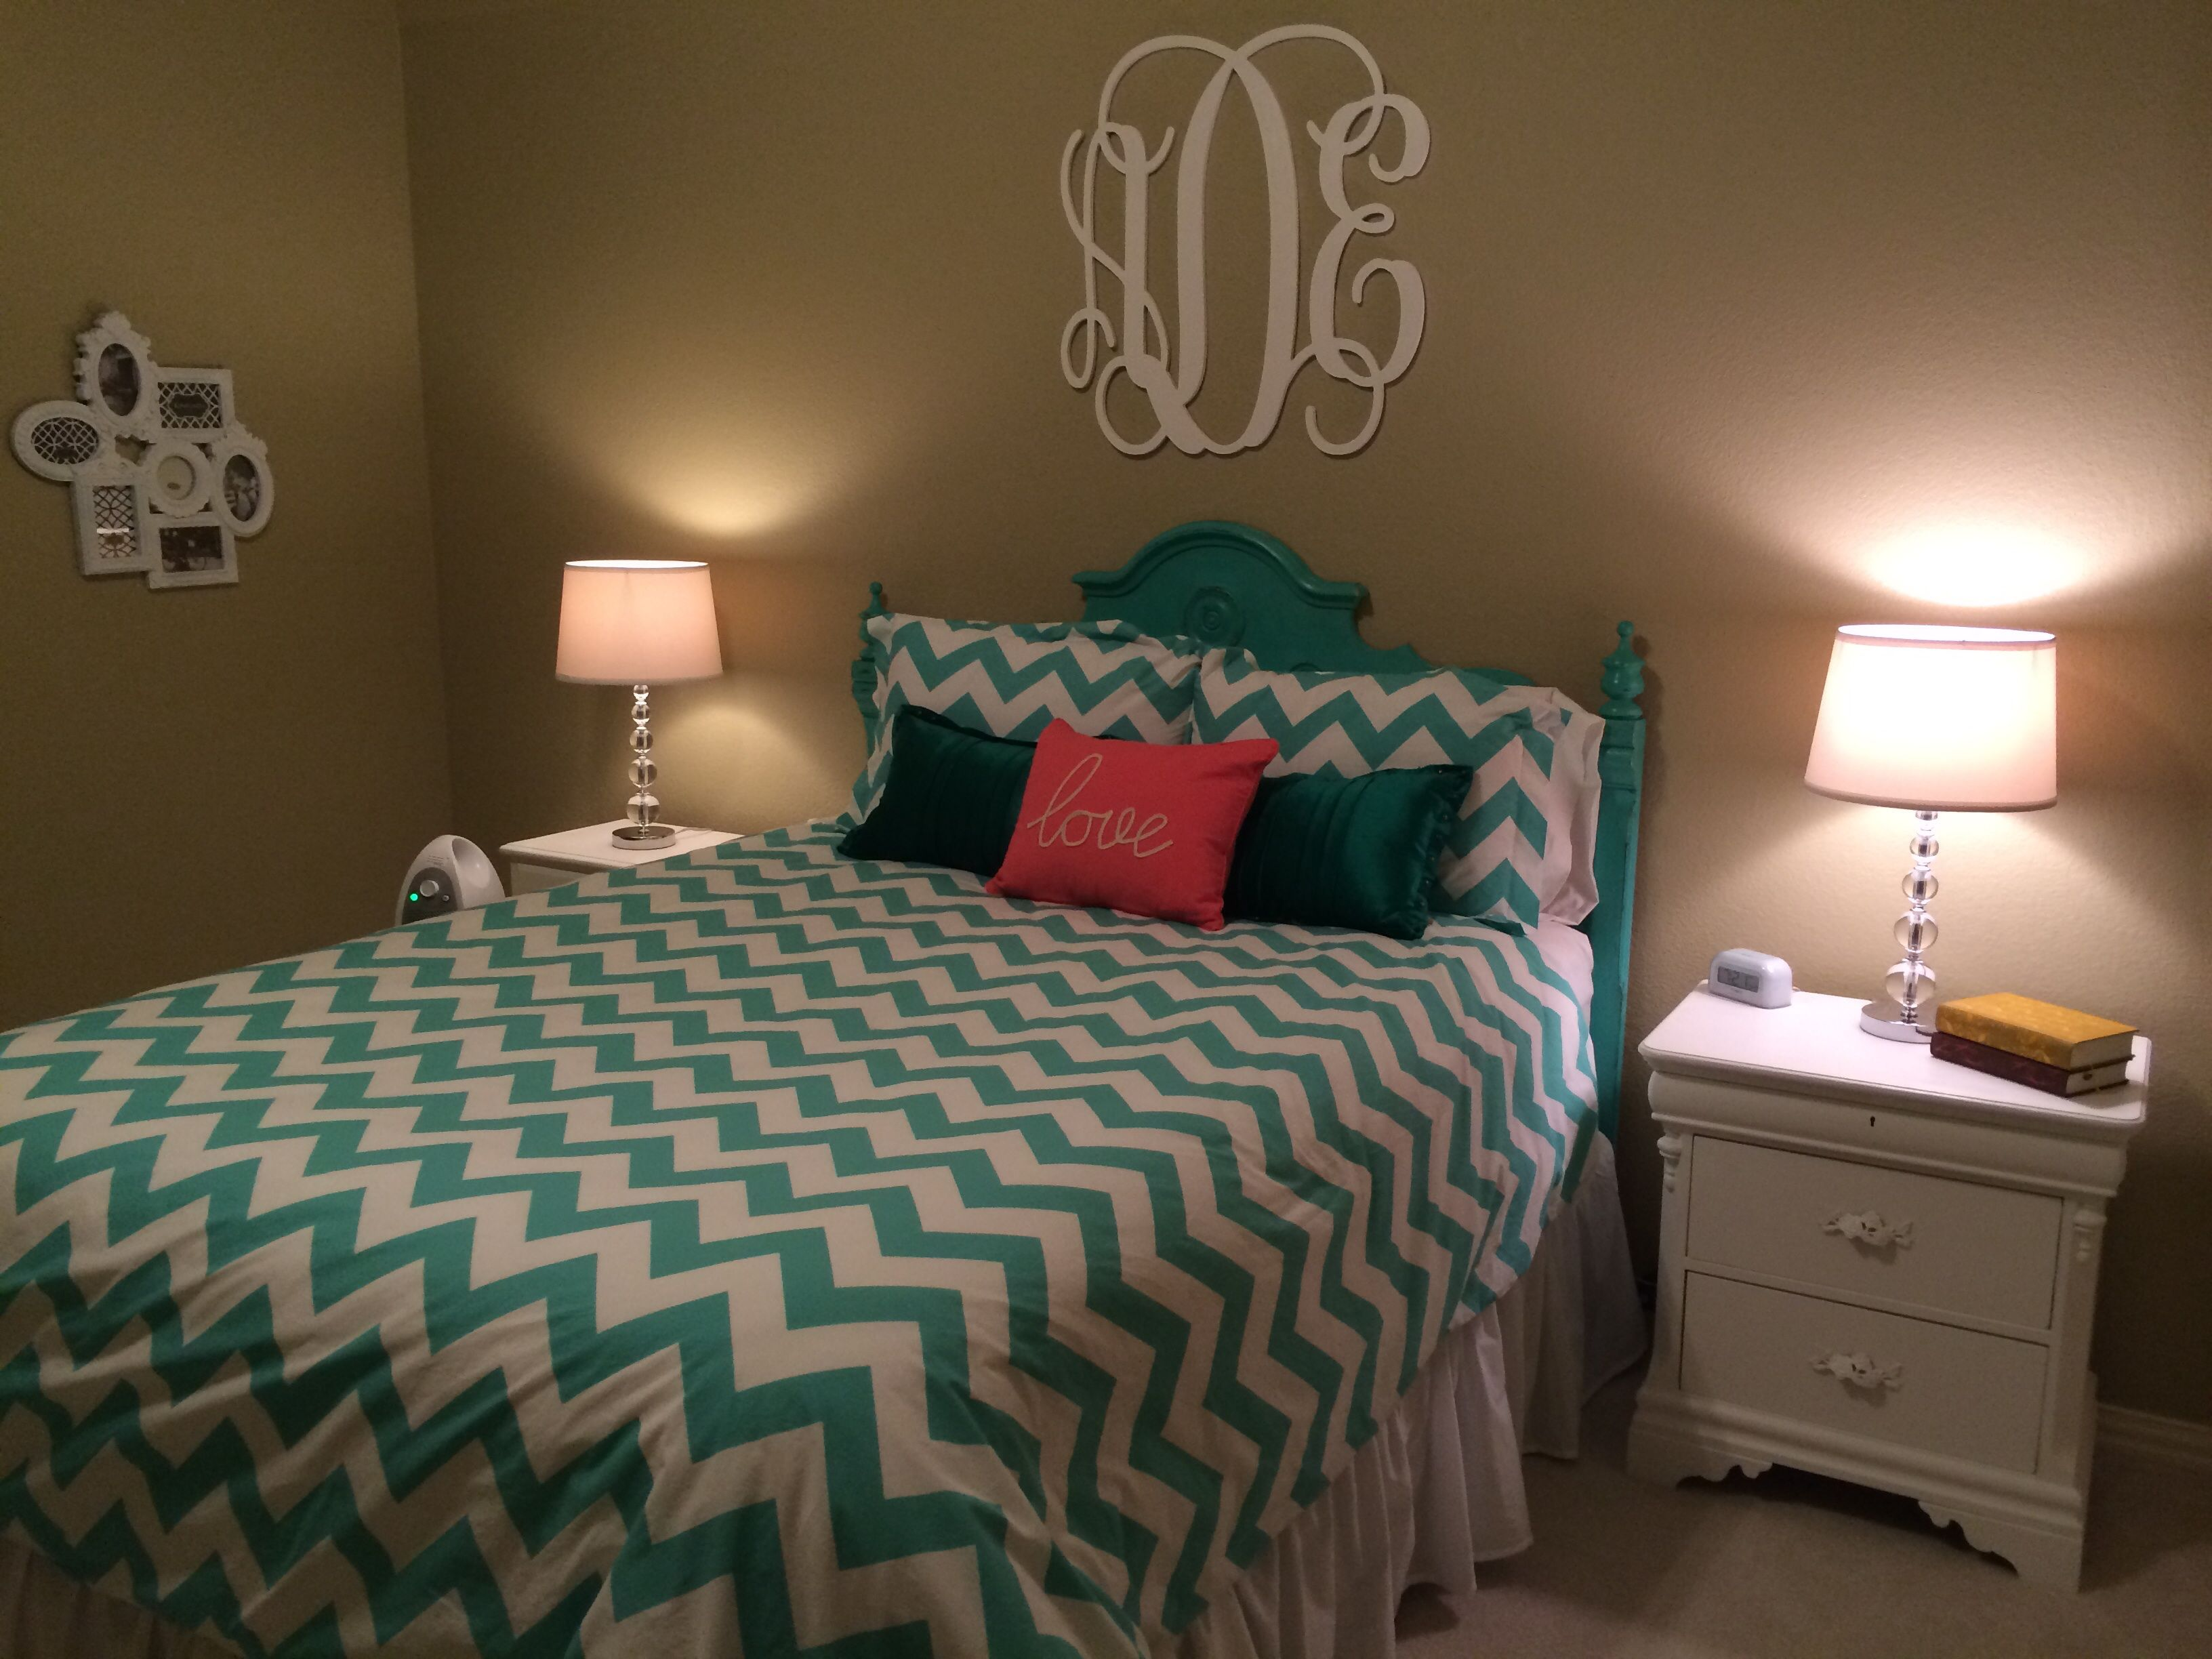 About Chevron Teen Rooms On Pinterest Teen Room Organization Room